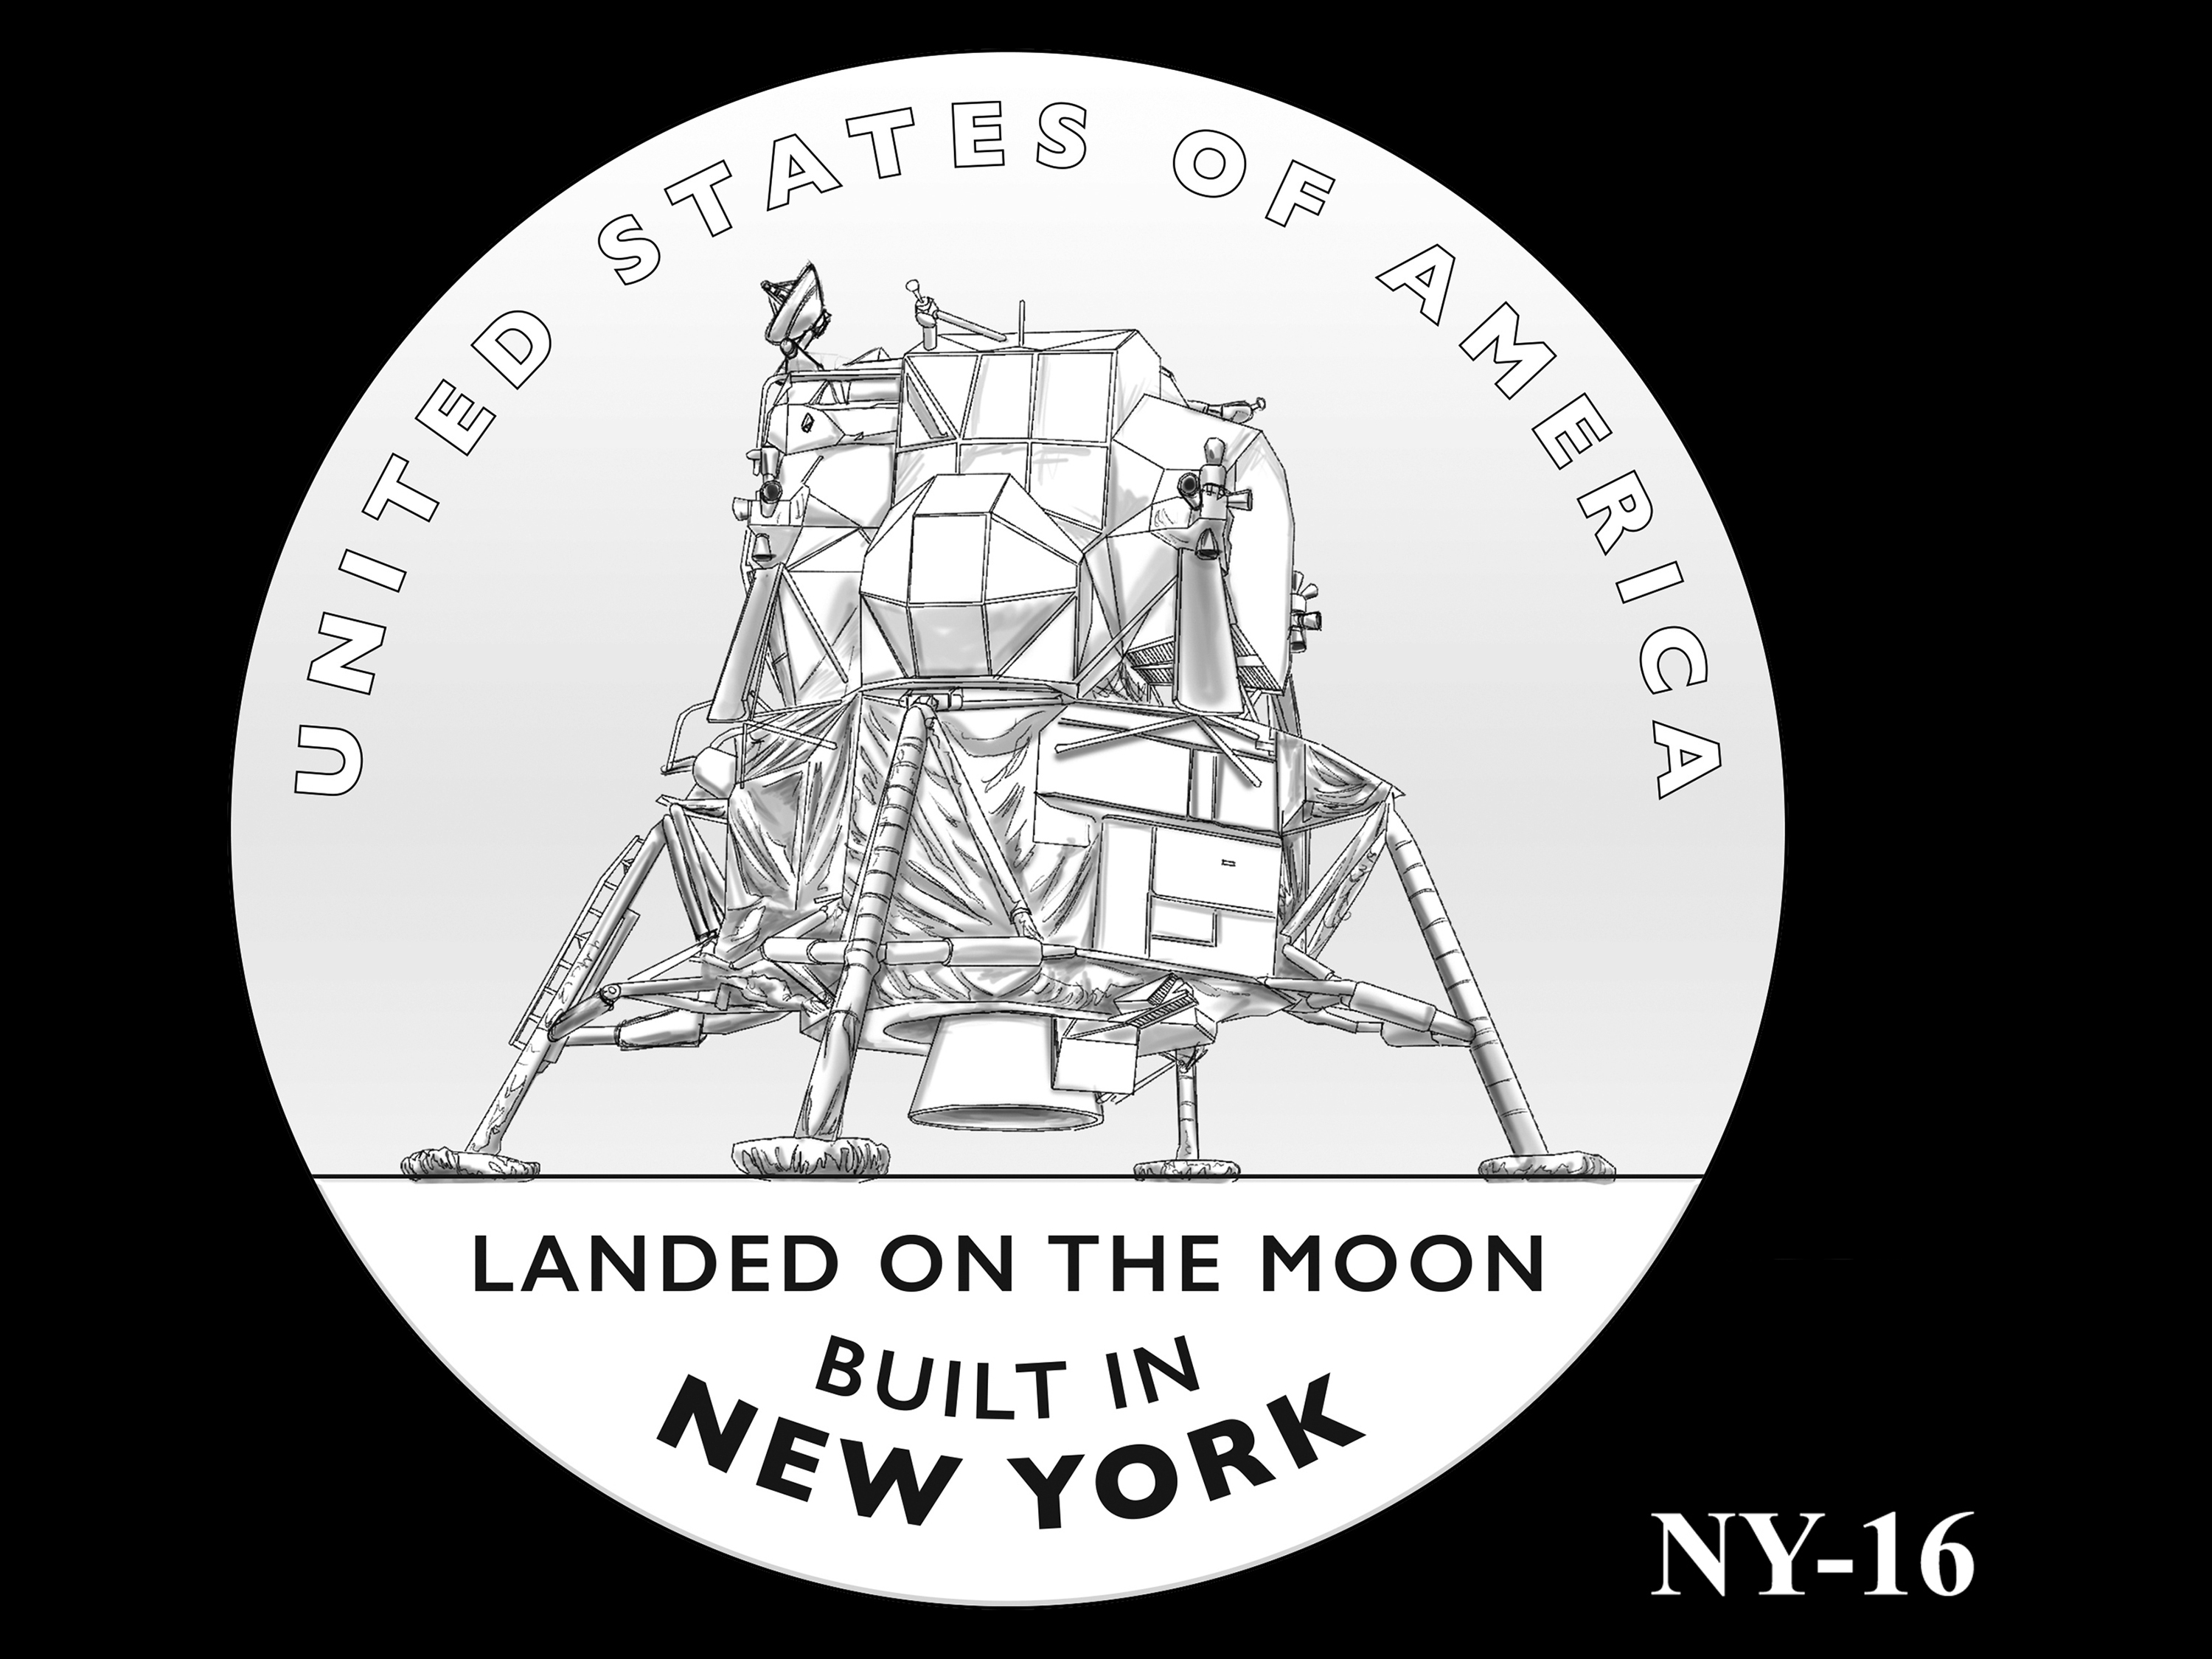 NY-16 -- 2021 American Innovation $1 Coin - New York